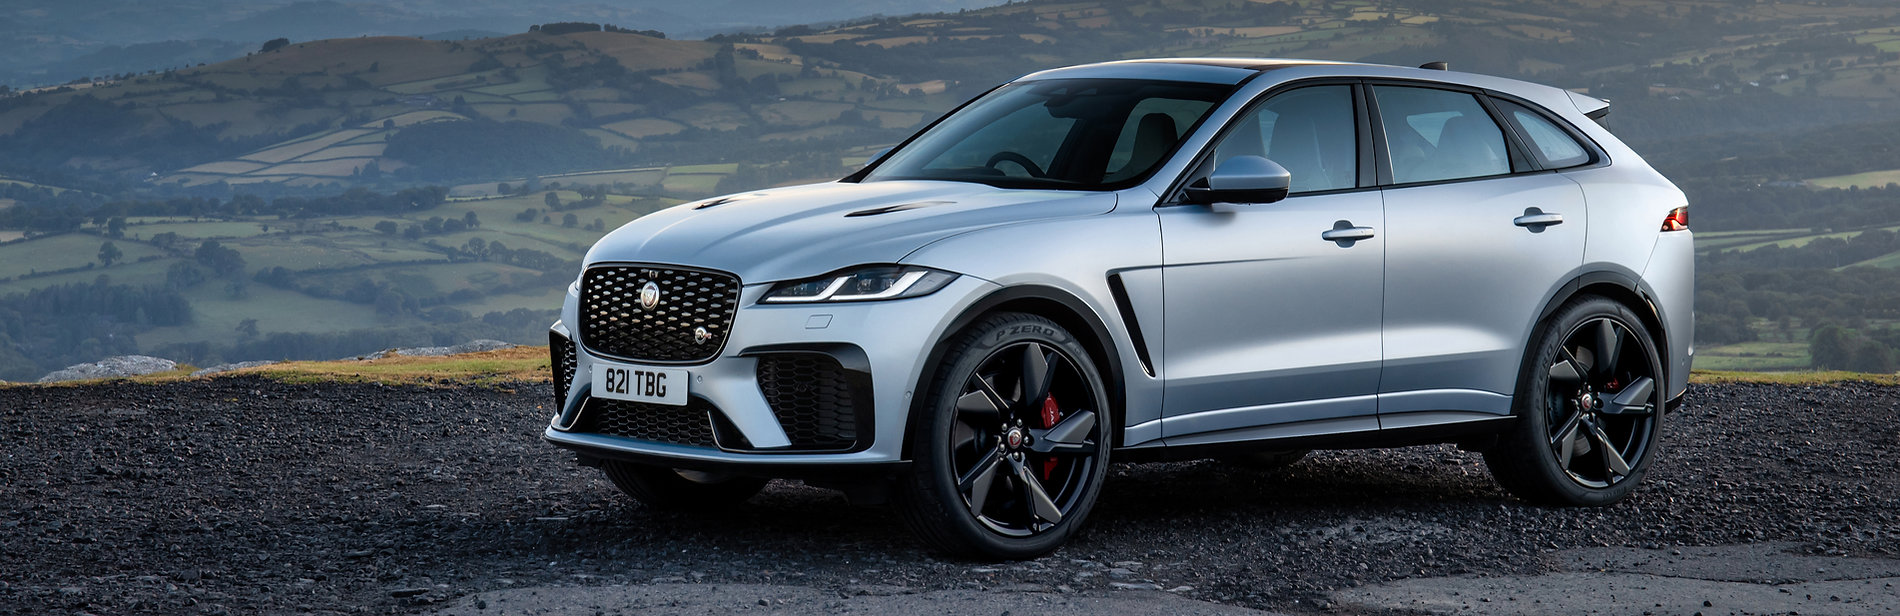 Jag_F-PACE_SVR_22MY_Exterior_Front_3-4_001_ND_110821.jpg